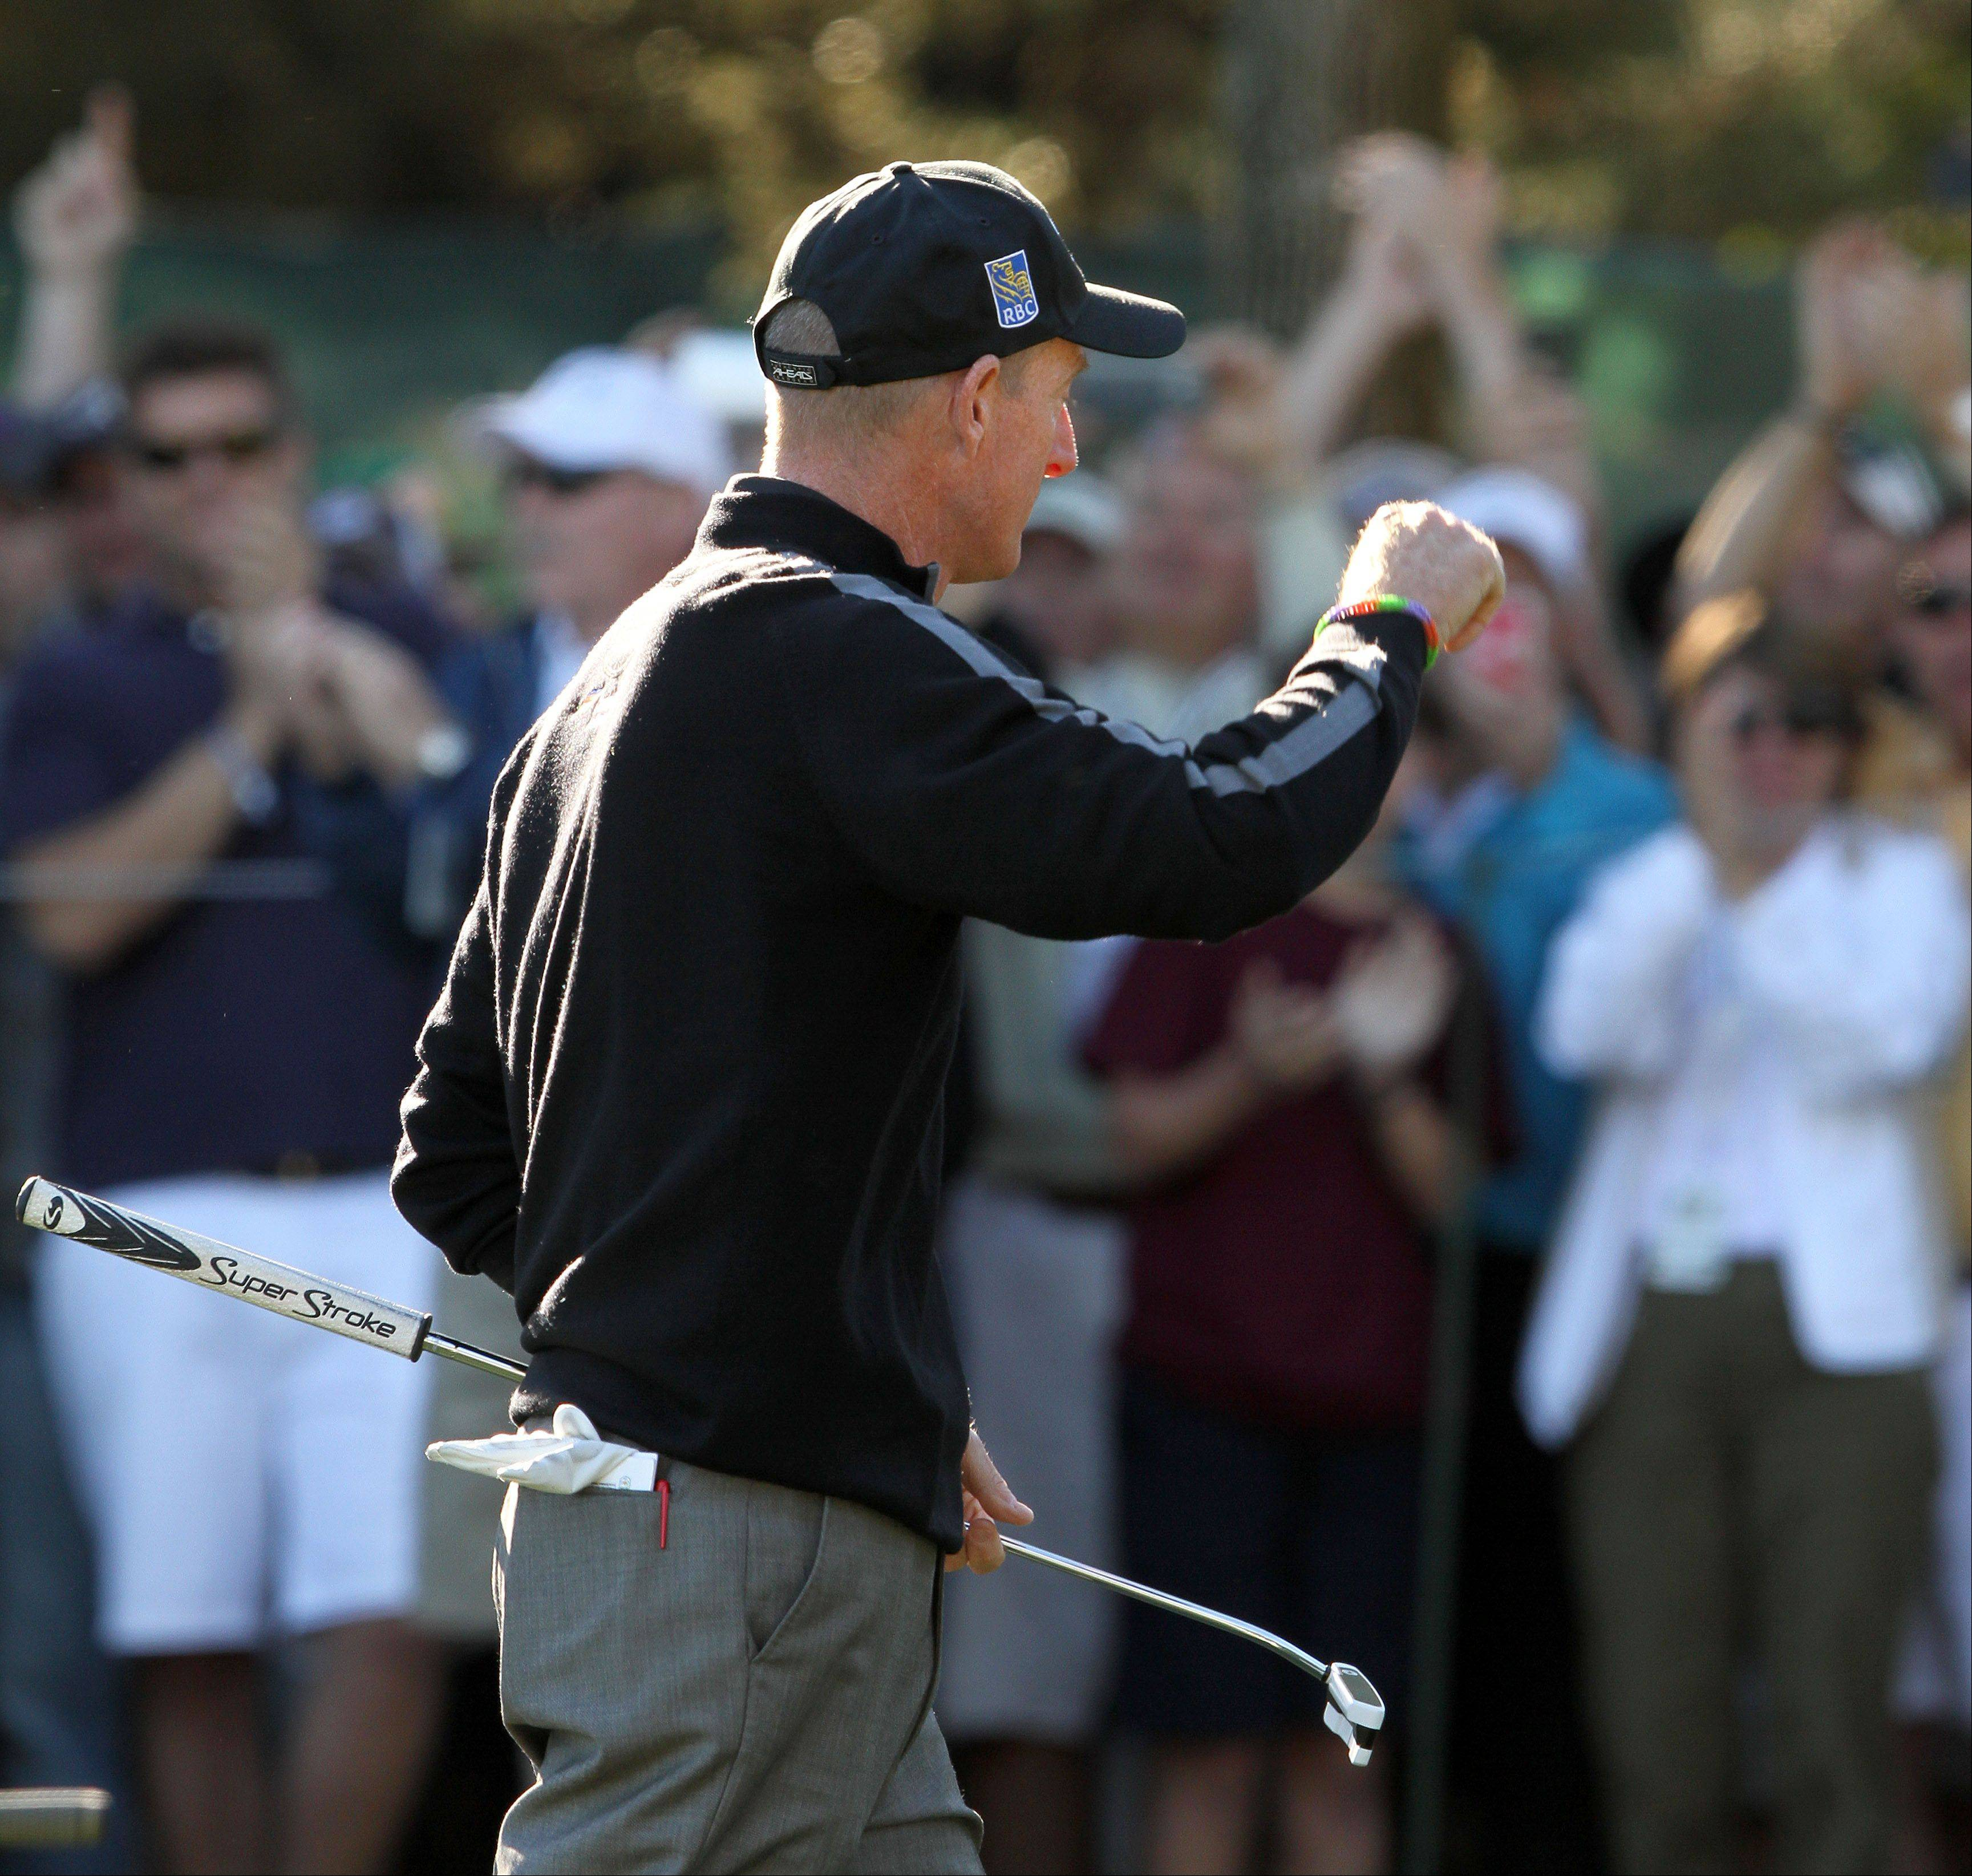 Jim Furyk gestures to the crowd after shooting his round of 59.